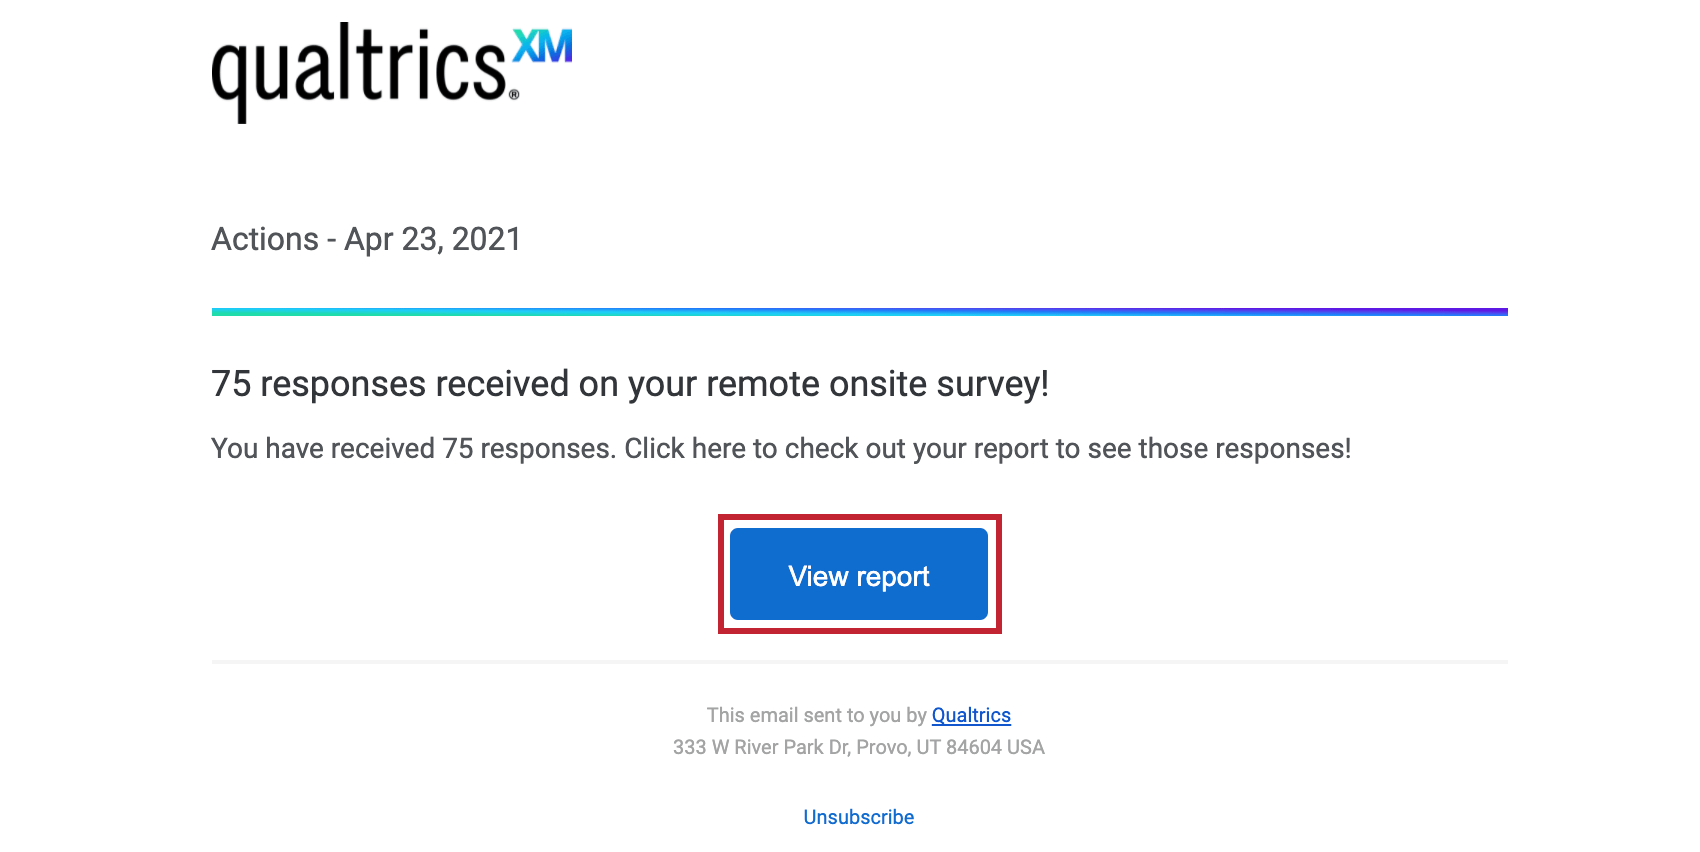 Email listing number of survey responses. Under the text is a blue button for viewing reports